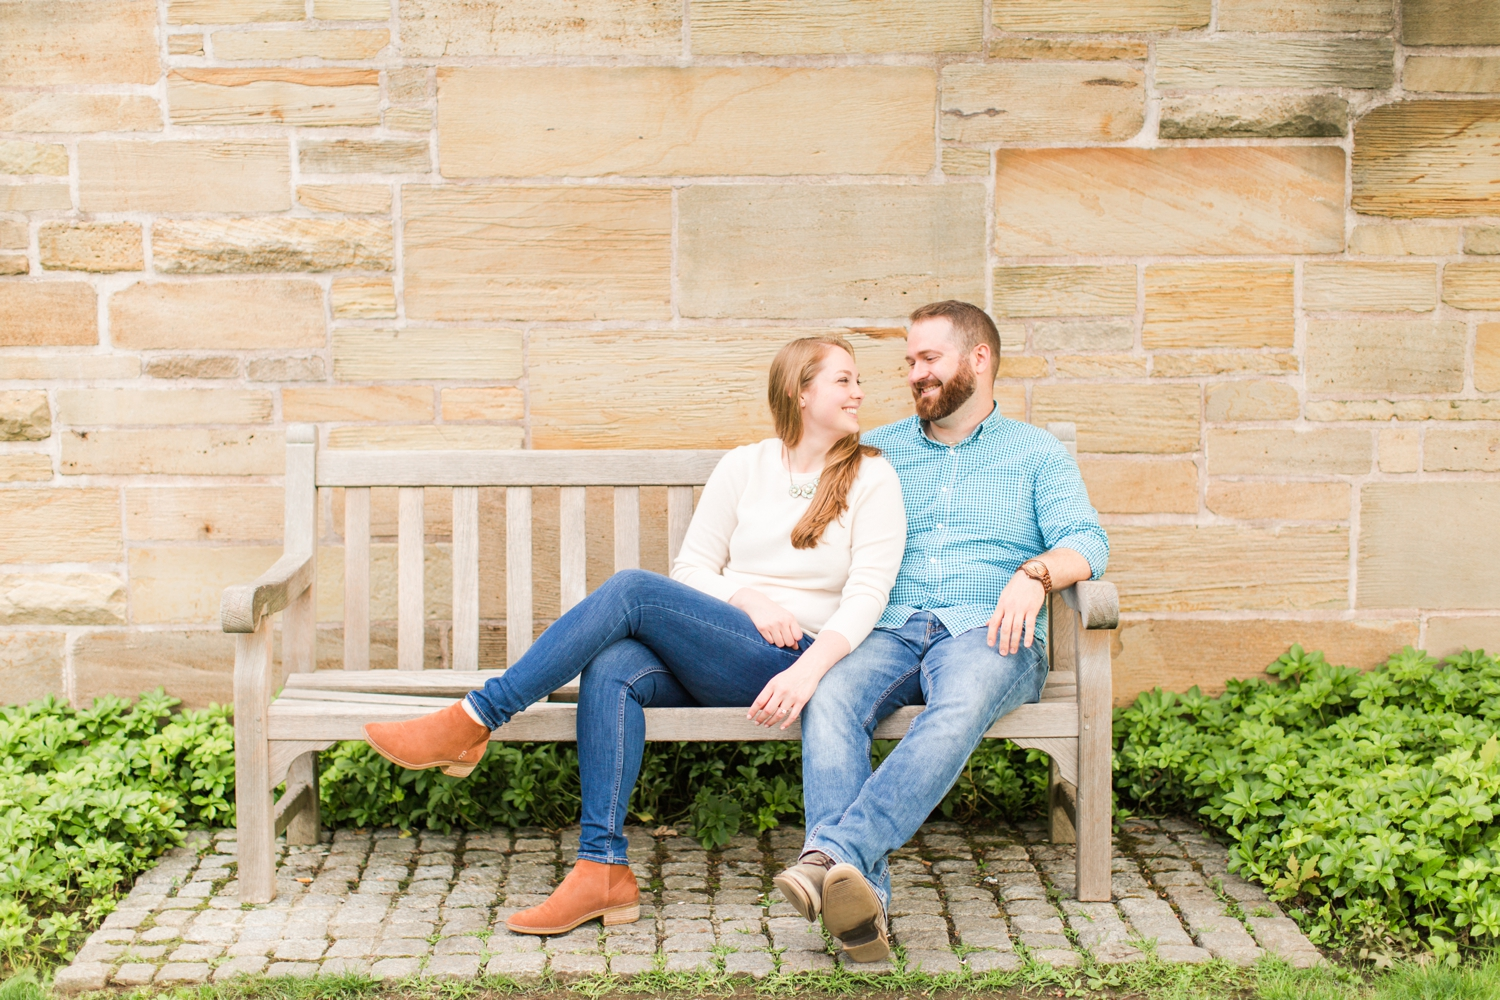 yale-university-engagement-session-new-haven-connecticut-wedding-photographer-kelsey-kyle-shaina-lee-photography-photo-6.jpg